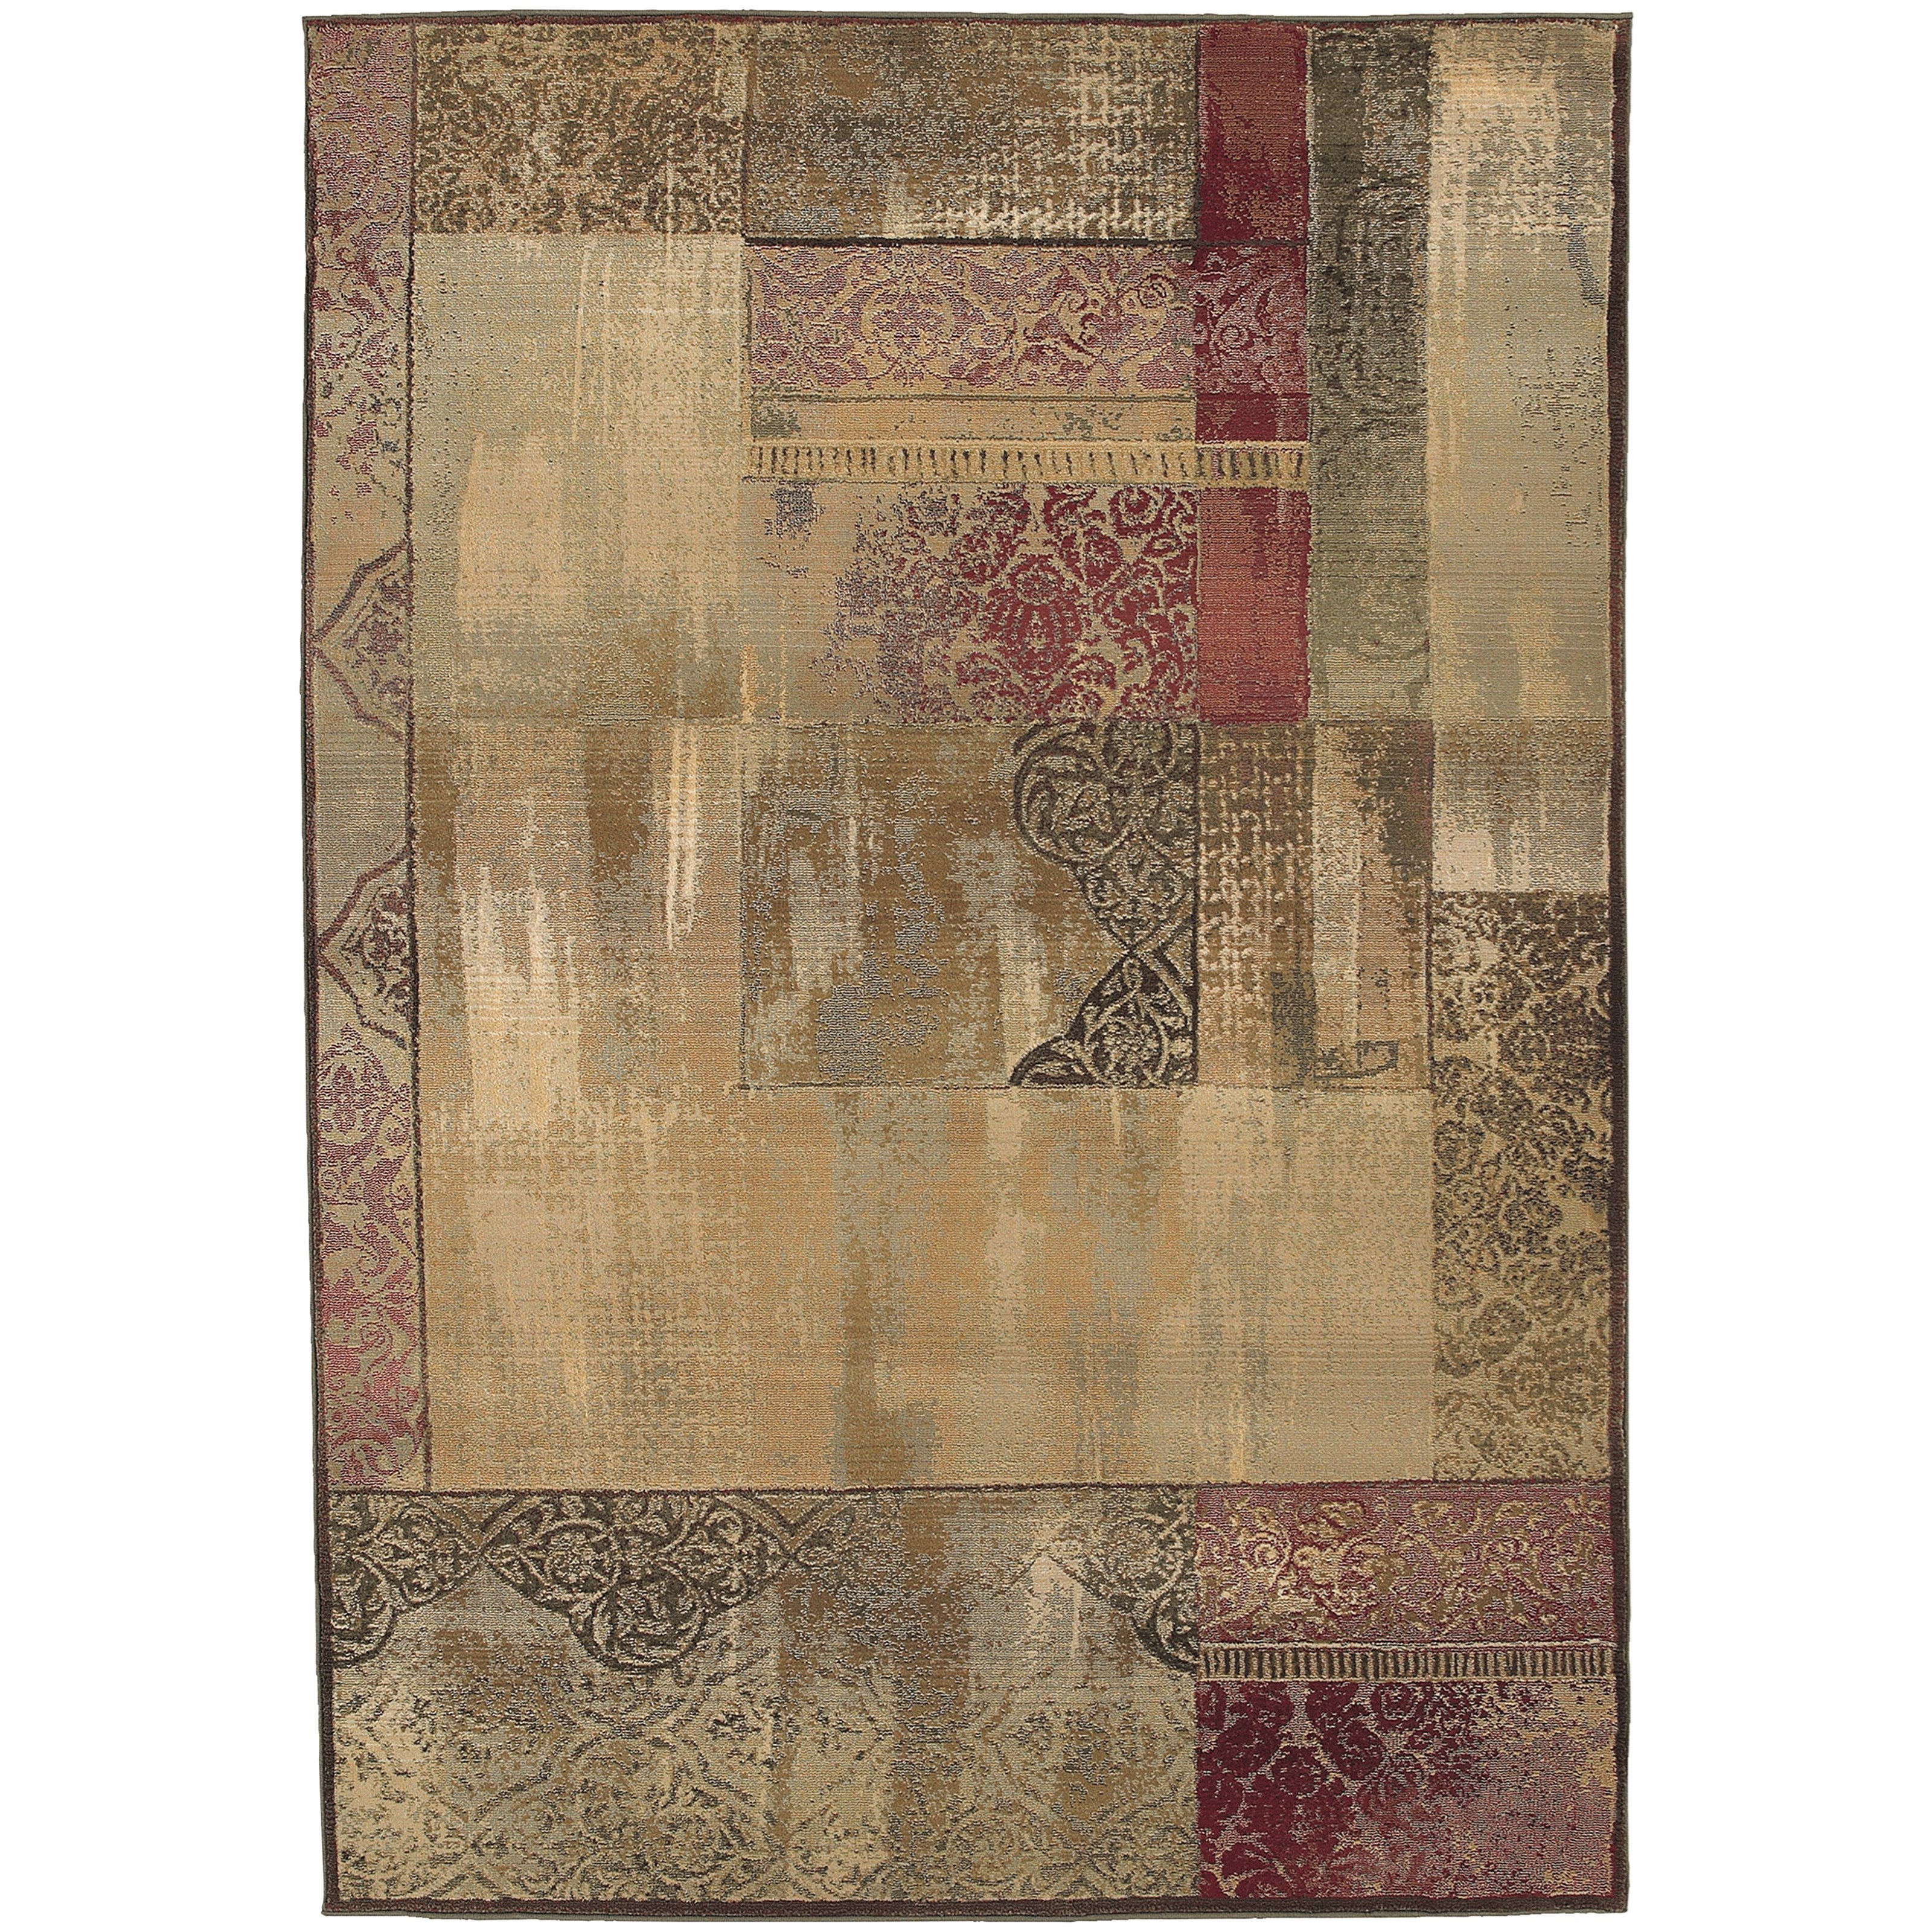 Generations 8' Casual Green/ Beige Square Rug by Oriental Weavers at Steger's Furniture